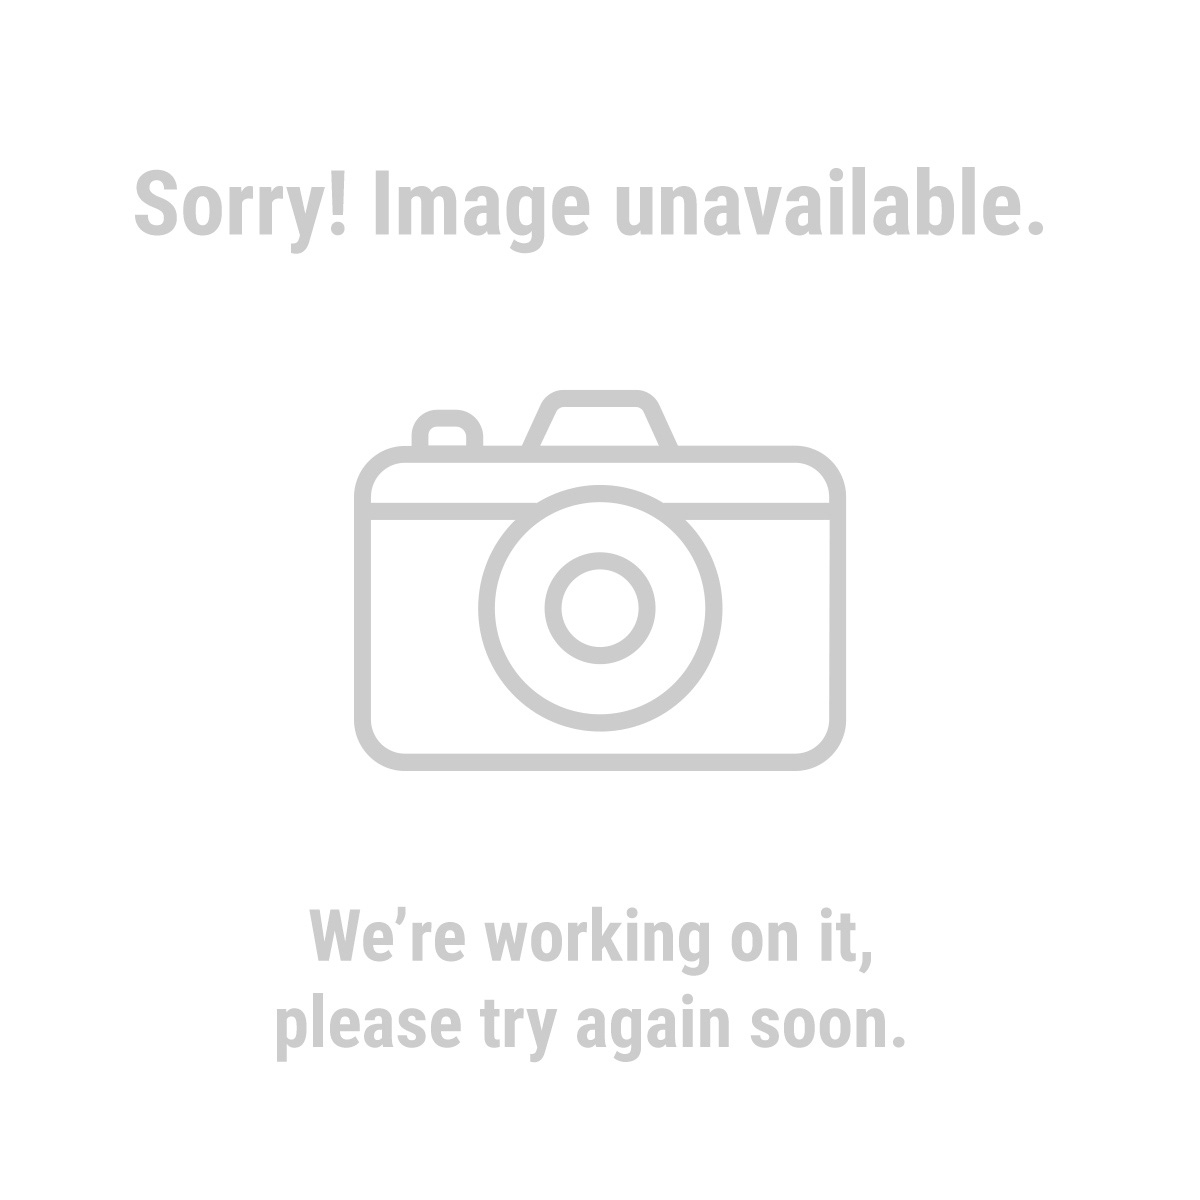 Predator Generators 69676 212cc, 4000 Watts Max/3200 Watts Rated Portable Generator